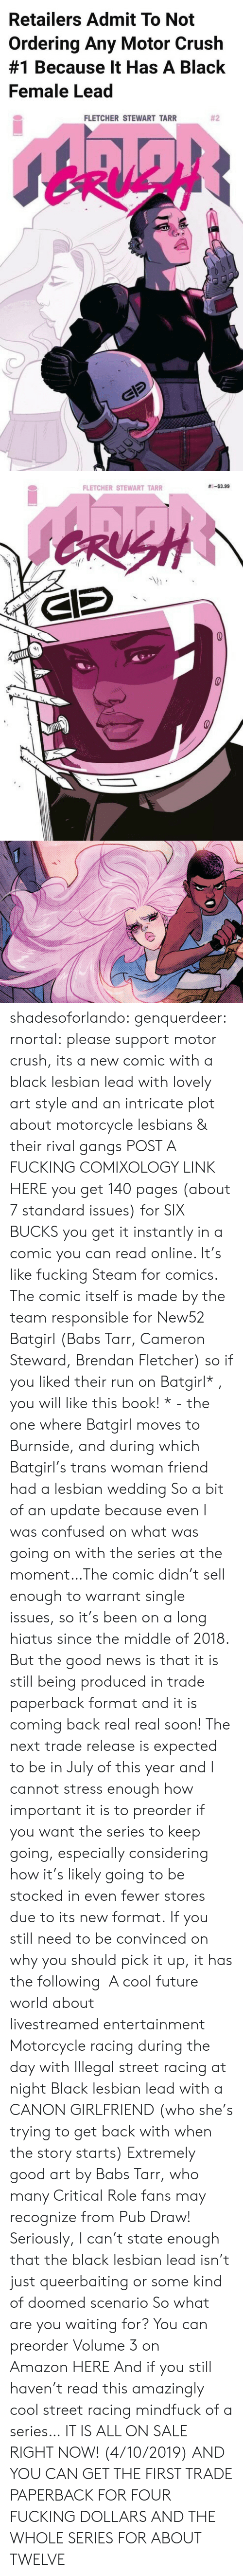 Stewart: Retailers Admit To Not  Ordering Any Motor Crush  #1 Because It Has A Black  Female Lead   FLETCHER STEWART TARR  #2   FLETCHER STEWART TARR  #S-53.99  42 shadesoforlando:  genquerdeer:  rnortal: please support motor crush, its a new comic with a black lesbian lead with lovely art style and an intricate plot about motorcycle lesbians & their rival gangs POST A FUCKING COMIXOLOGY LINK HERE you get 140 pages (about 7 standard issues) for SIX BUCKS you get it instantly in a comic you can read online. It's like fucking Steam for comics. The comic itself is made by the team responsible for New52 Batgirl (Babs Tarr, Cameron Steward, Brendan Fletcher) so if you liked their run on Batgirl* , you will like this book! * - the one where Batgirl moves to Burnside, and during which Batgirl's trans woman friend had a lesbian wedding  So a bit of an update because even I was confused on what was going on with the series at the moment…The comic didn't sell enough to warrant single issues, so it's been on a long hiatus since the middle of 2018. But the good news is that it is still being produced in trade paperback format and it is coming back real real soon! The next trade release is expected to be in July of this year and I cannot stress enough how important it is to preorder if you want the series to keep going, especially considering how it's likely going to be stocked in even fewer stores due to its new format. If you still need to be convinced on why you should pick it up, it has the following  A cool future world about livestreamed entertainment Motorcycle racing during the day with Illegal street racing at night Black lesbian lead with a CANON GIRLFRIEND (who she's trying to get back with when the story starts) Extremely good art by Babs Tarr, who many Critical Role fans may recognize from Pub Draw! Seriously, I can't state enough that the black lesbian lead isn't just queerbaiting or some kind of doomed scenario So what are you waiting for? You can preorder Volume 3 on Amazon HERE And if you still haven't read this amazingly cool street racing mindfuck of a series… IT IS ALL ON SALE RIGHT NOW! (4/10/2019) AND YOU CAN GET THE FIRST TRADE PAPERBACK FOR FOUR FUCKING DOLLARS AND THE WHOLE SERIES FOR ABOUT TWELVE